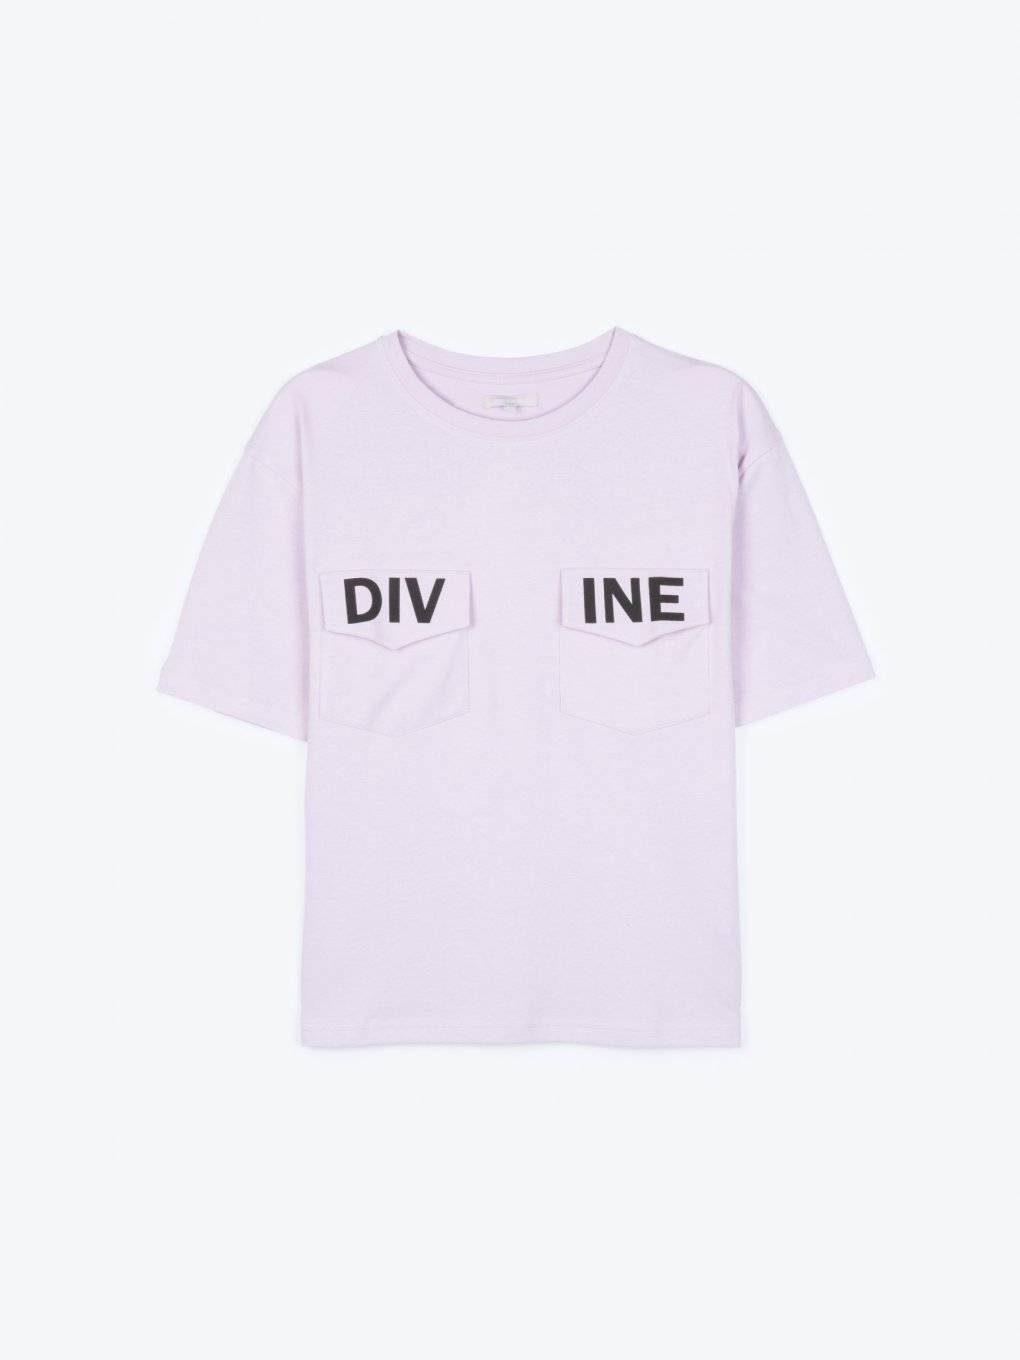 T-shirt with printed chest pockets